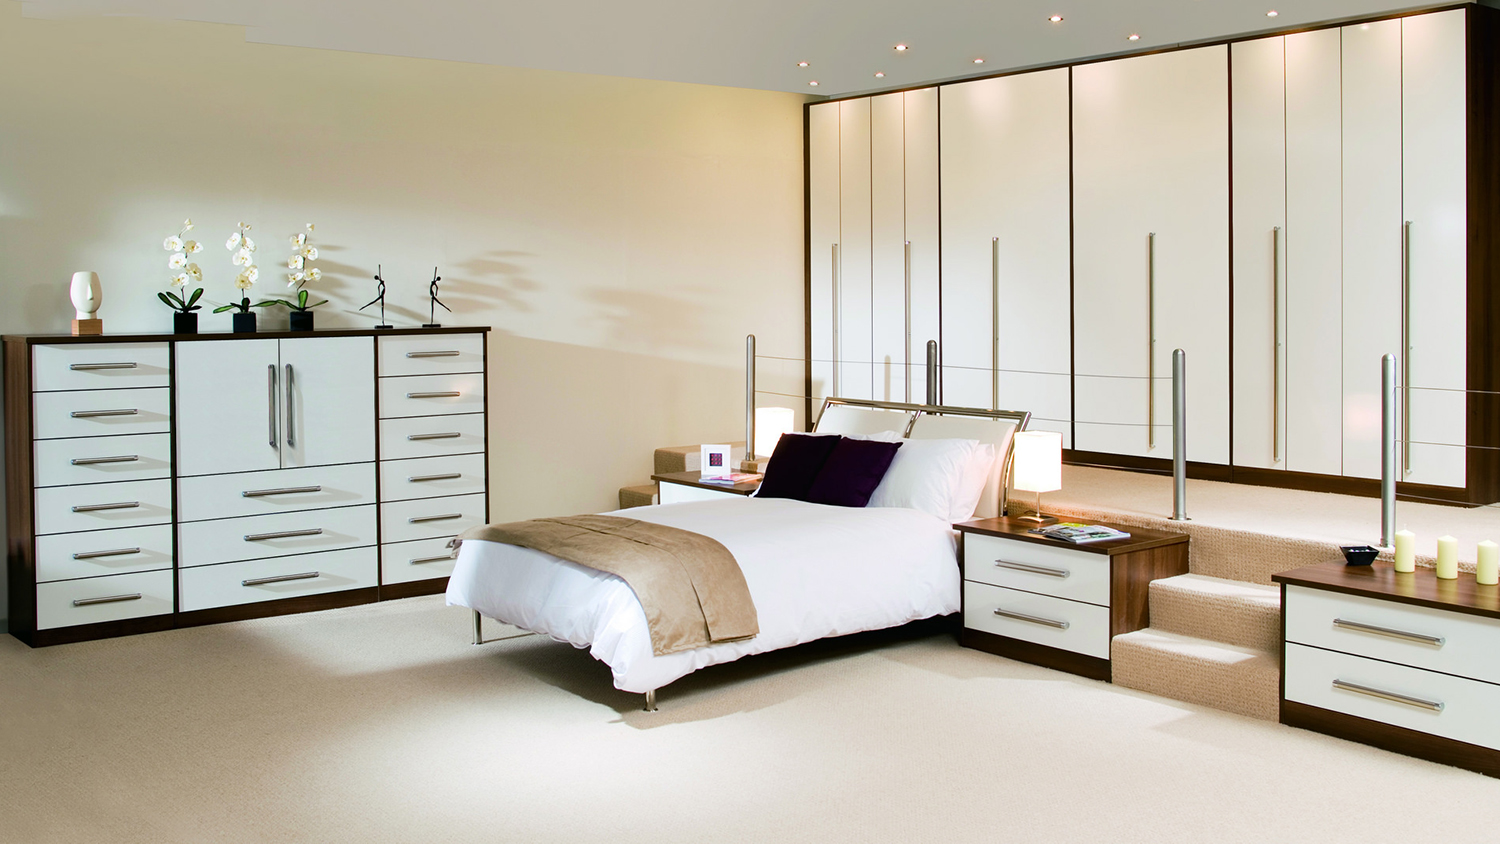 a very neat, tidy bedroom